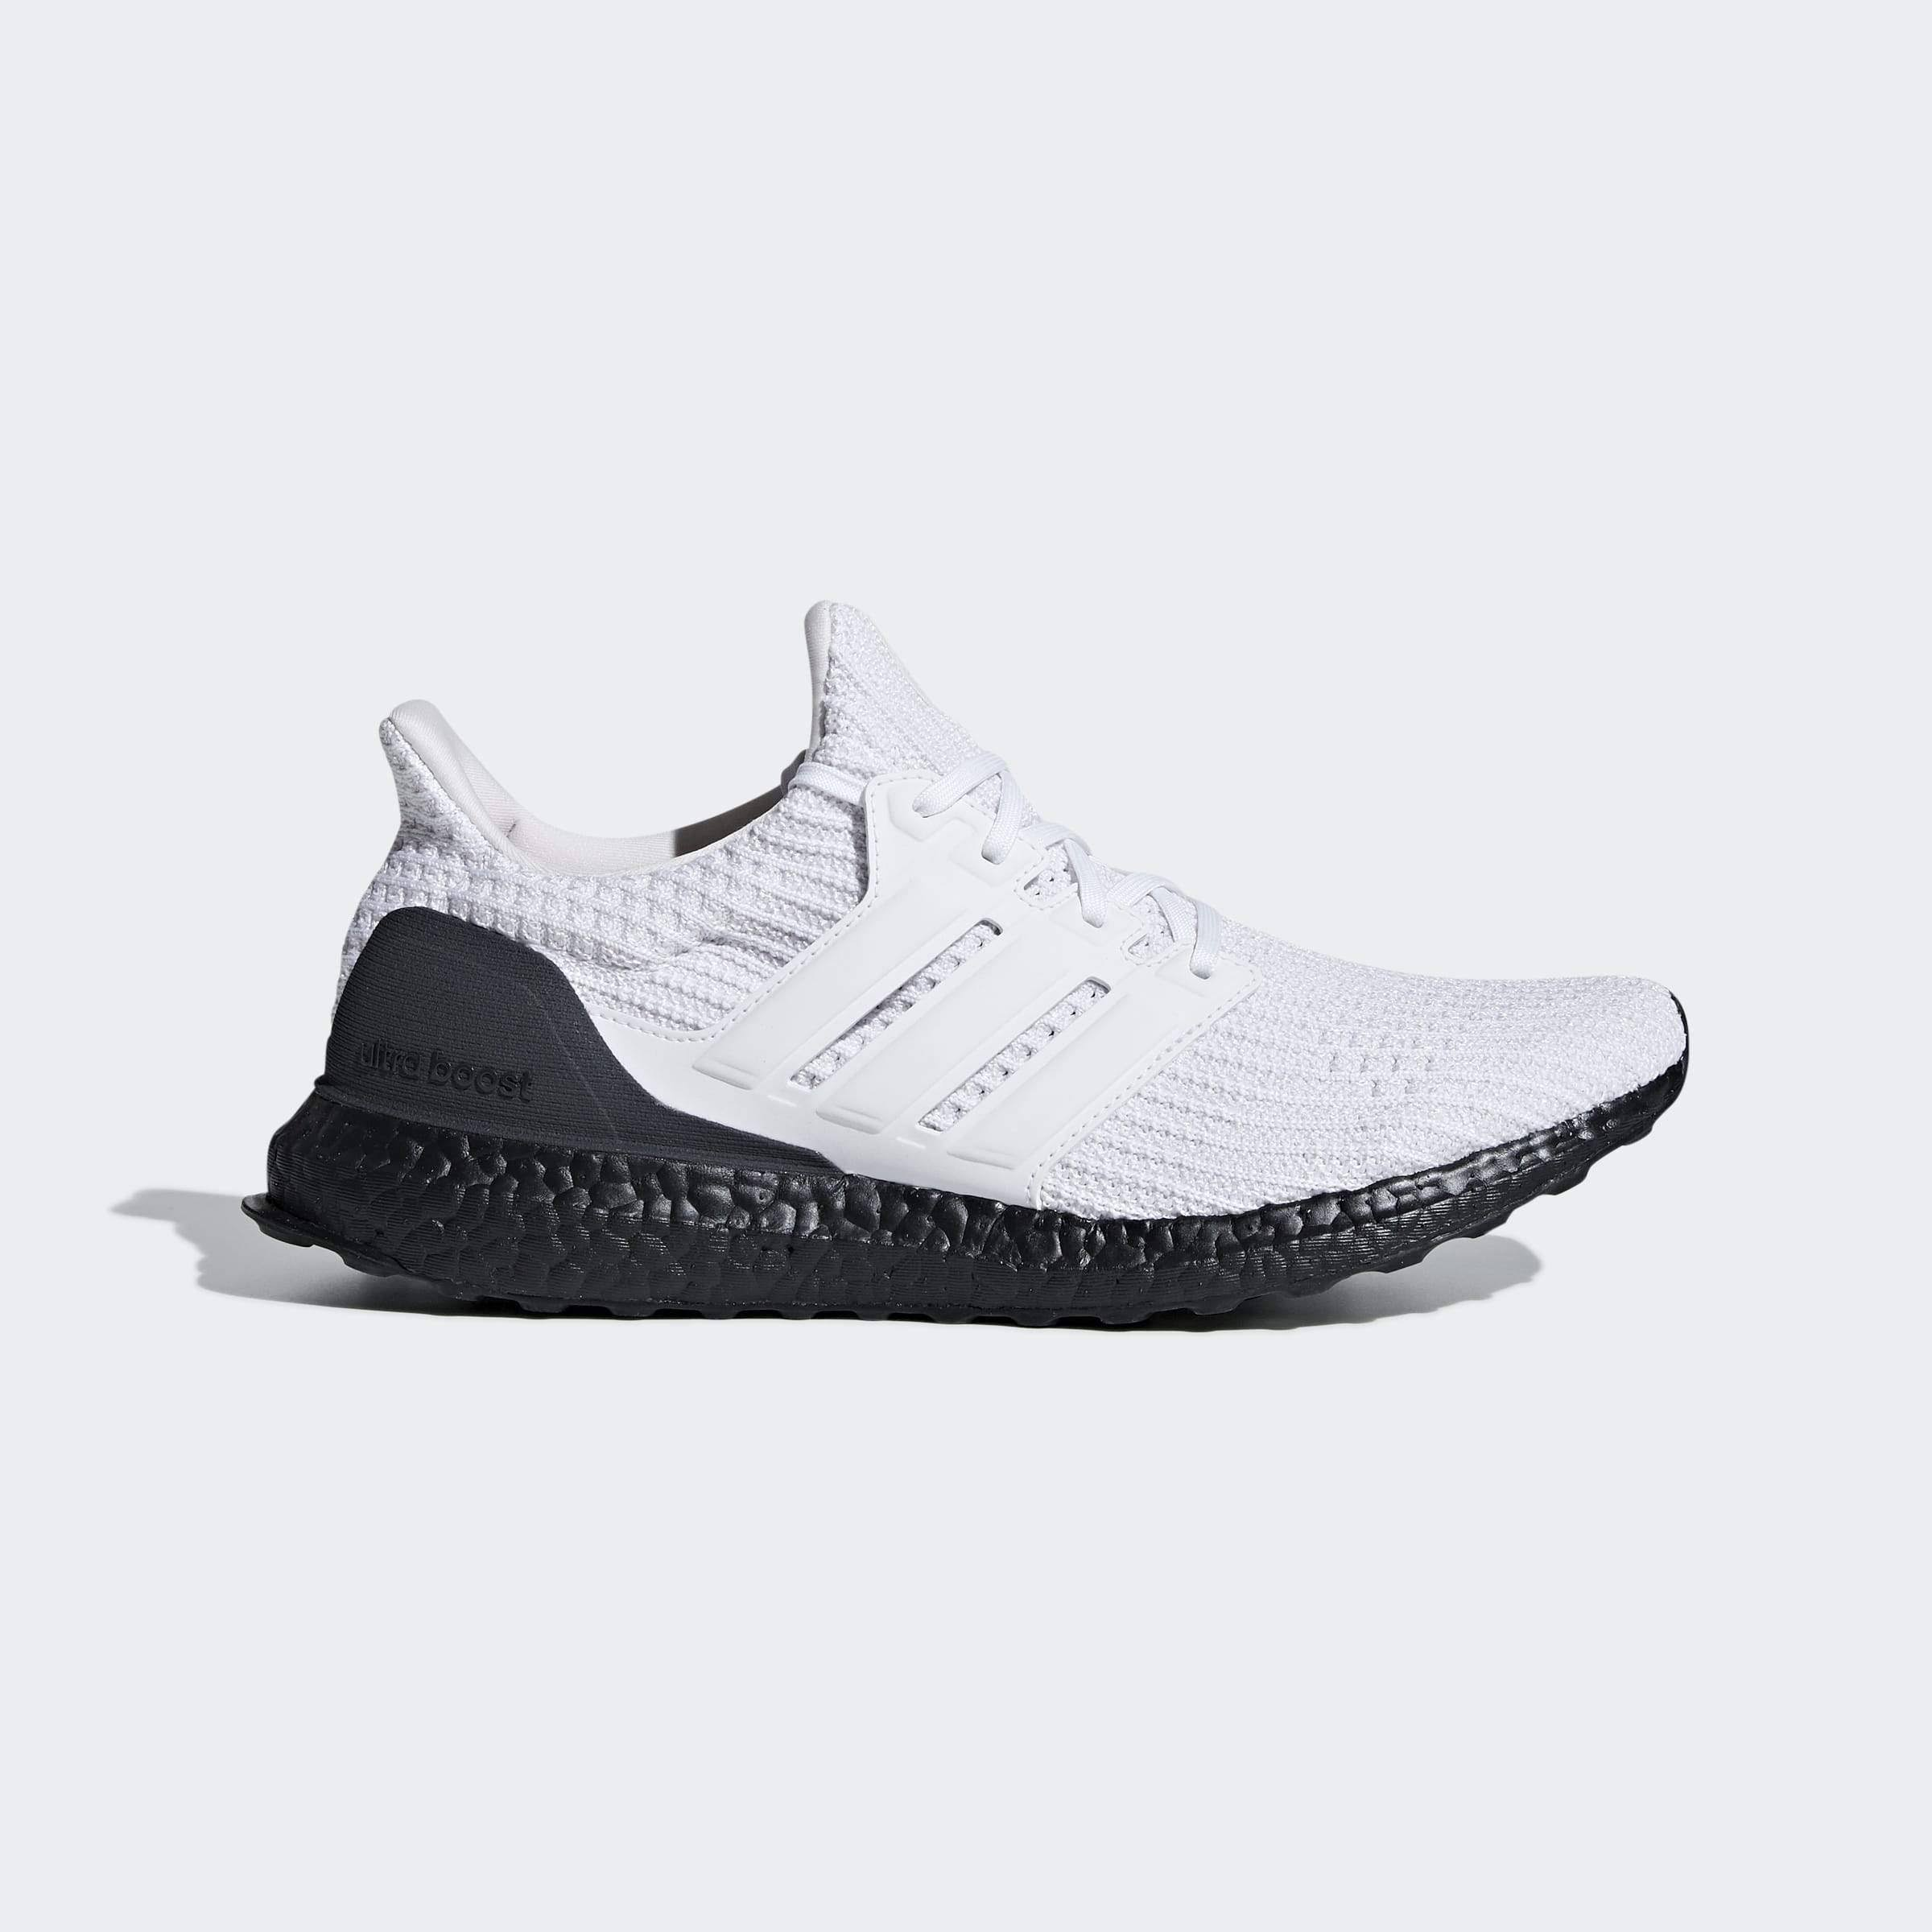 Ultraboost Shoes Men's Running Orchid Tint / Cloud White DB3197 10.5 UK